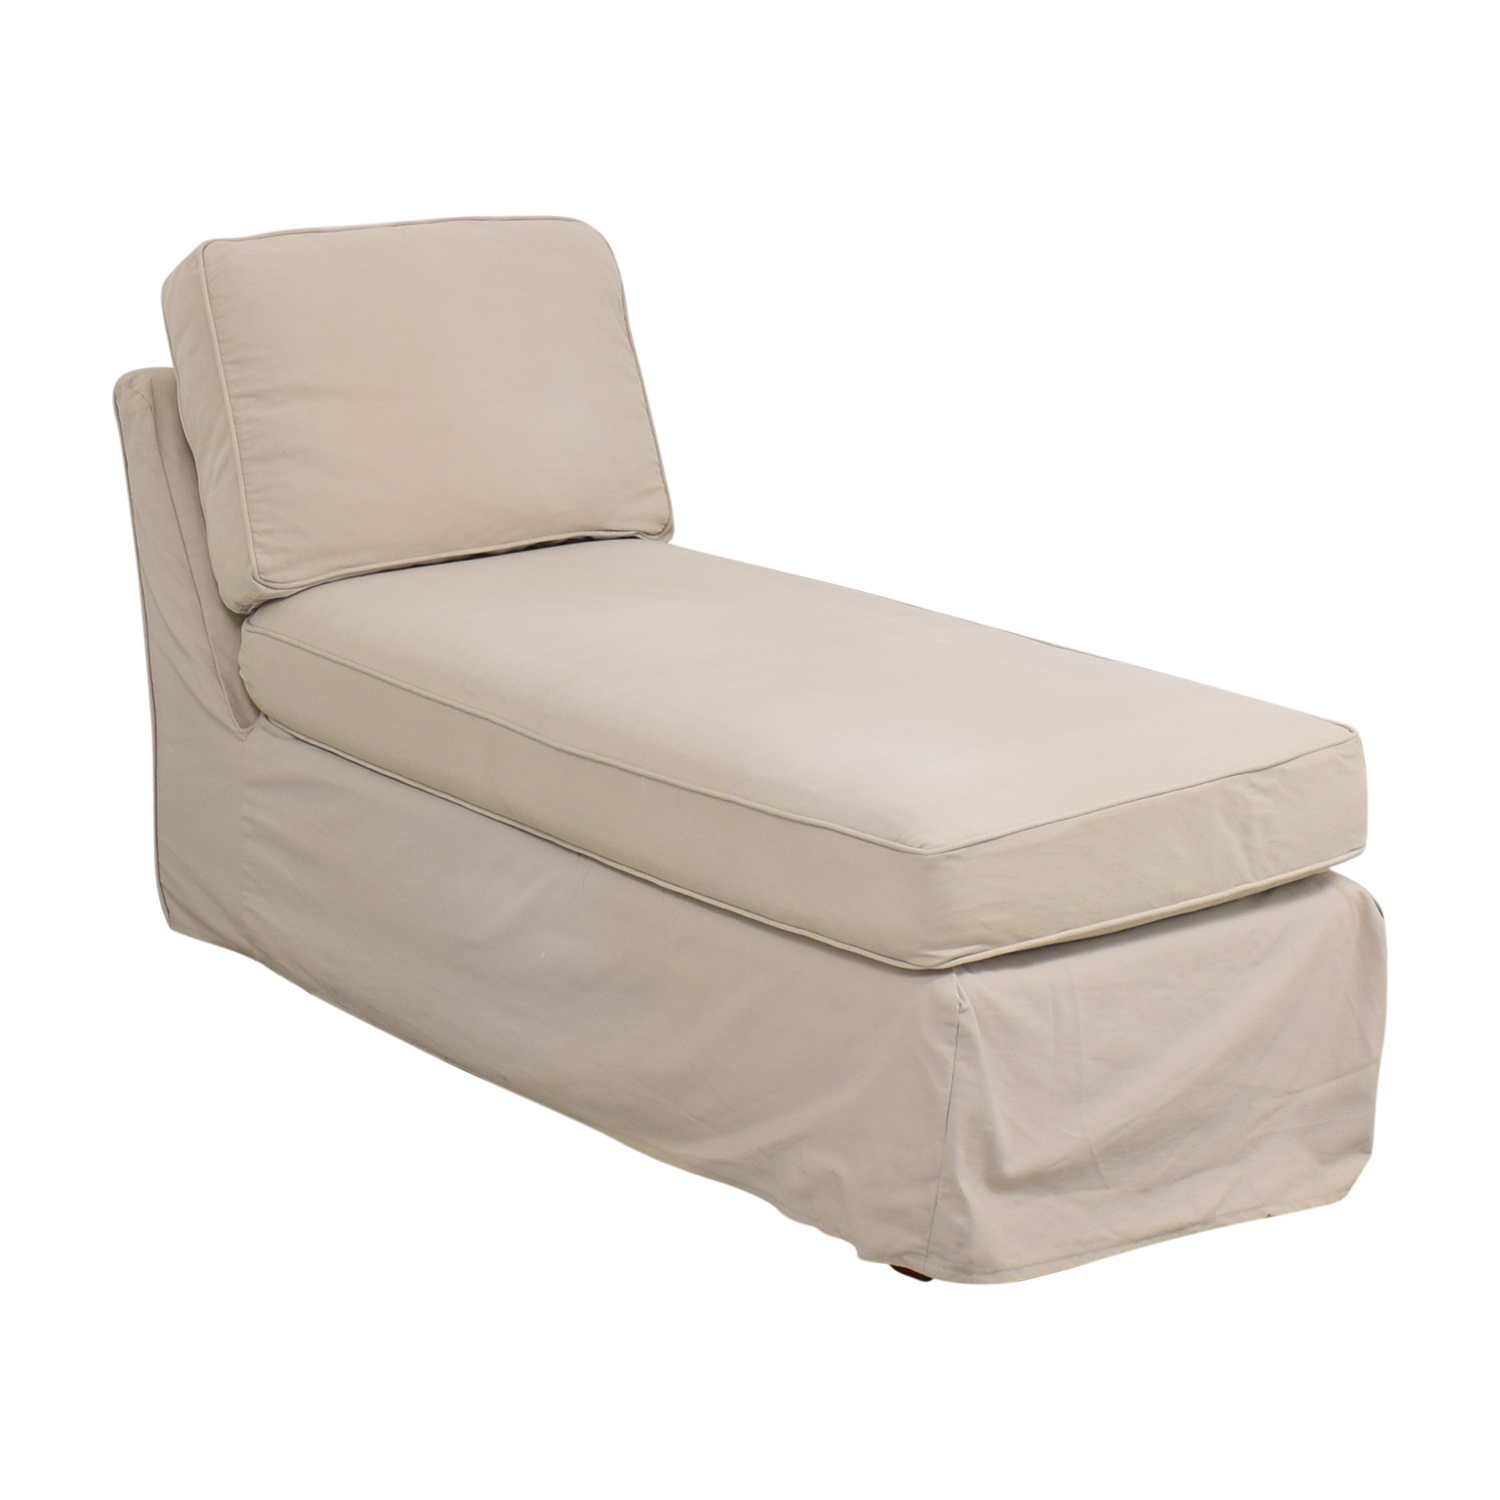 Crate & Barrel Crate & Barrel Chaise Lounge ct